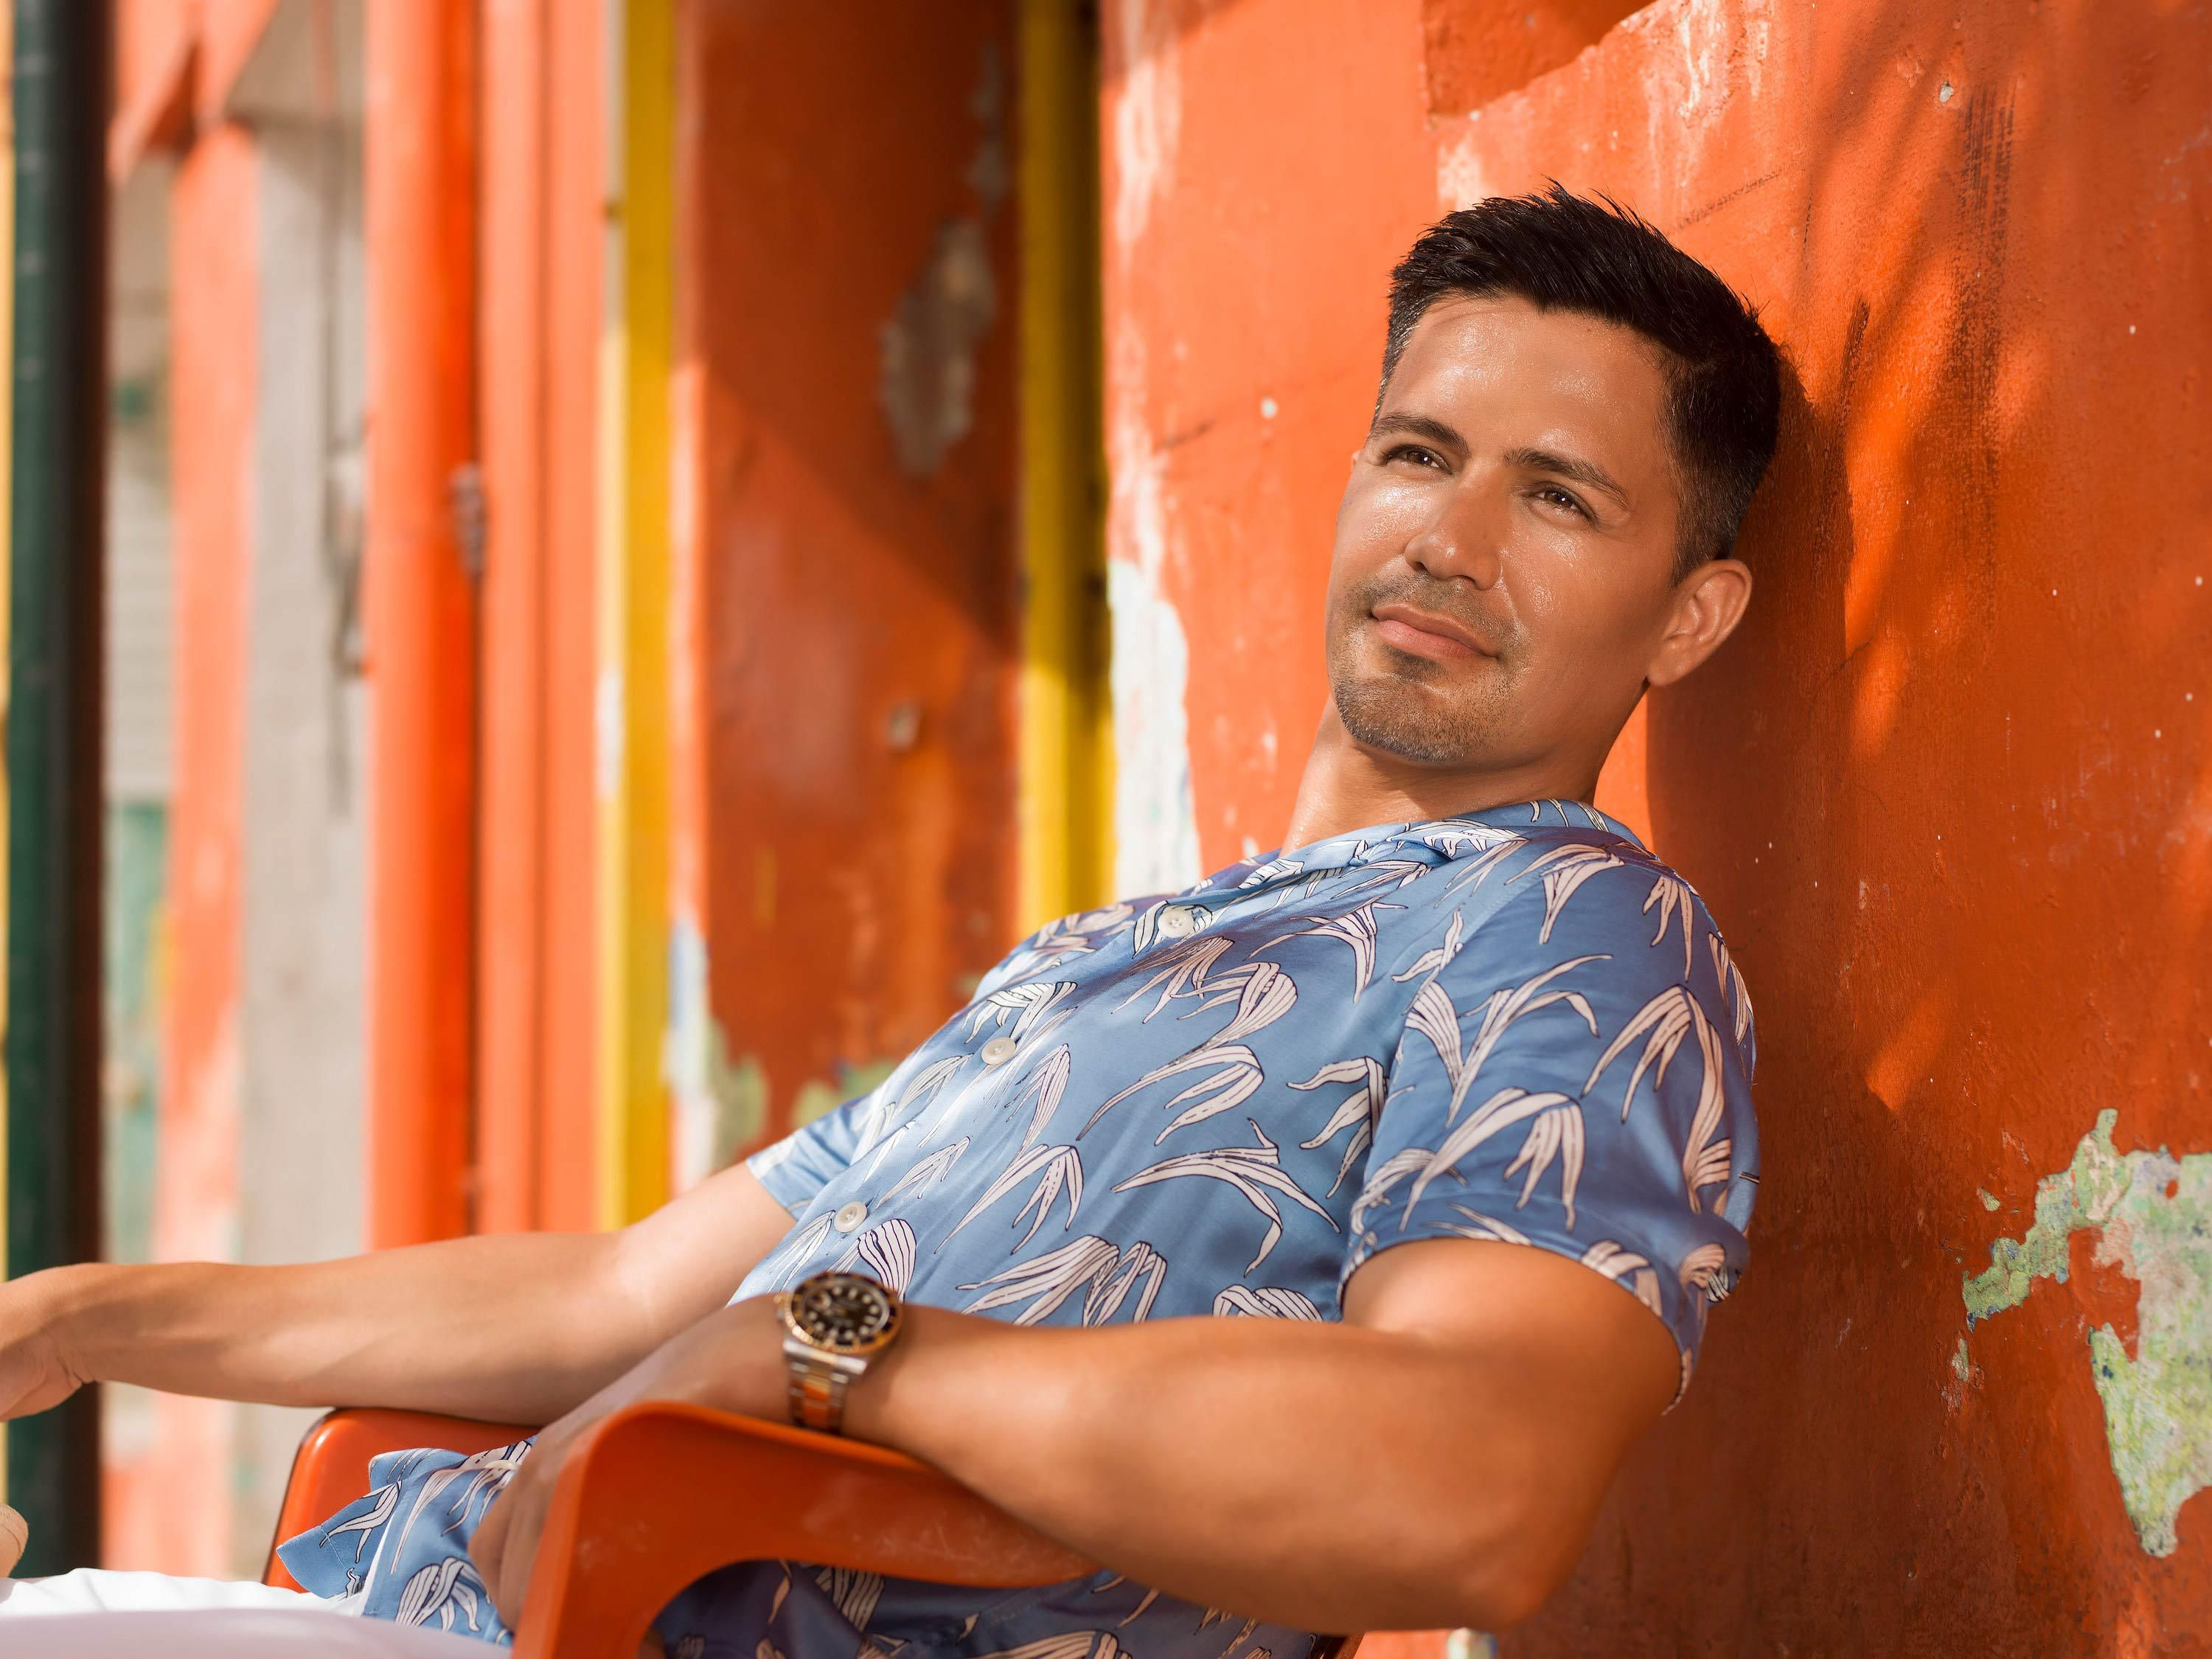 Jay Hernandez reclining in an orange chair against a bright orange wall on a street in Cancun